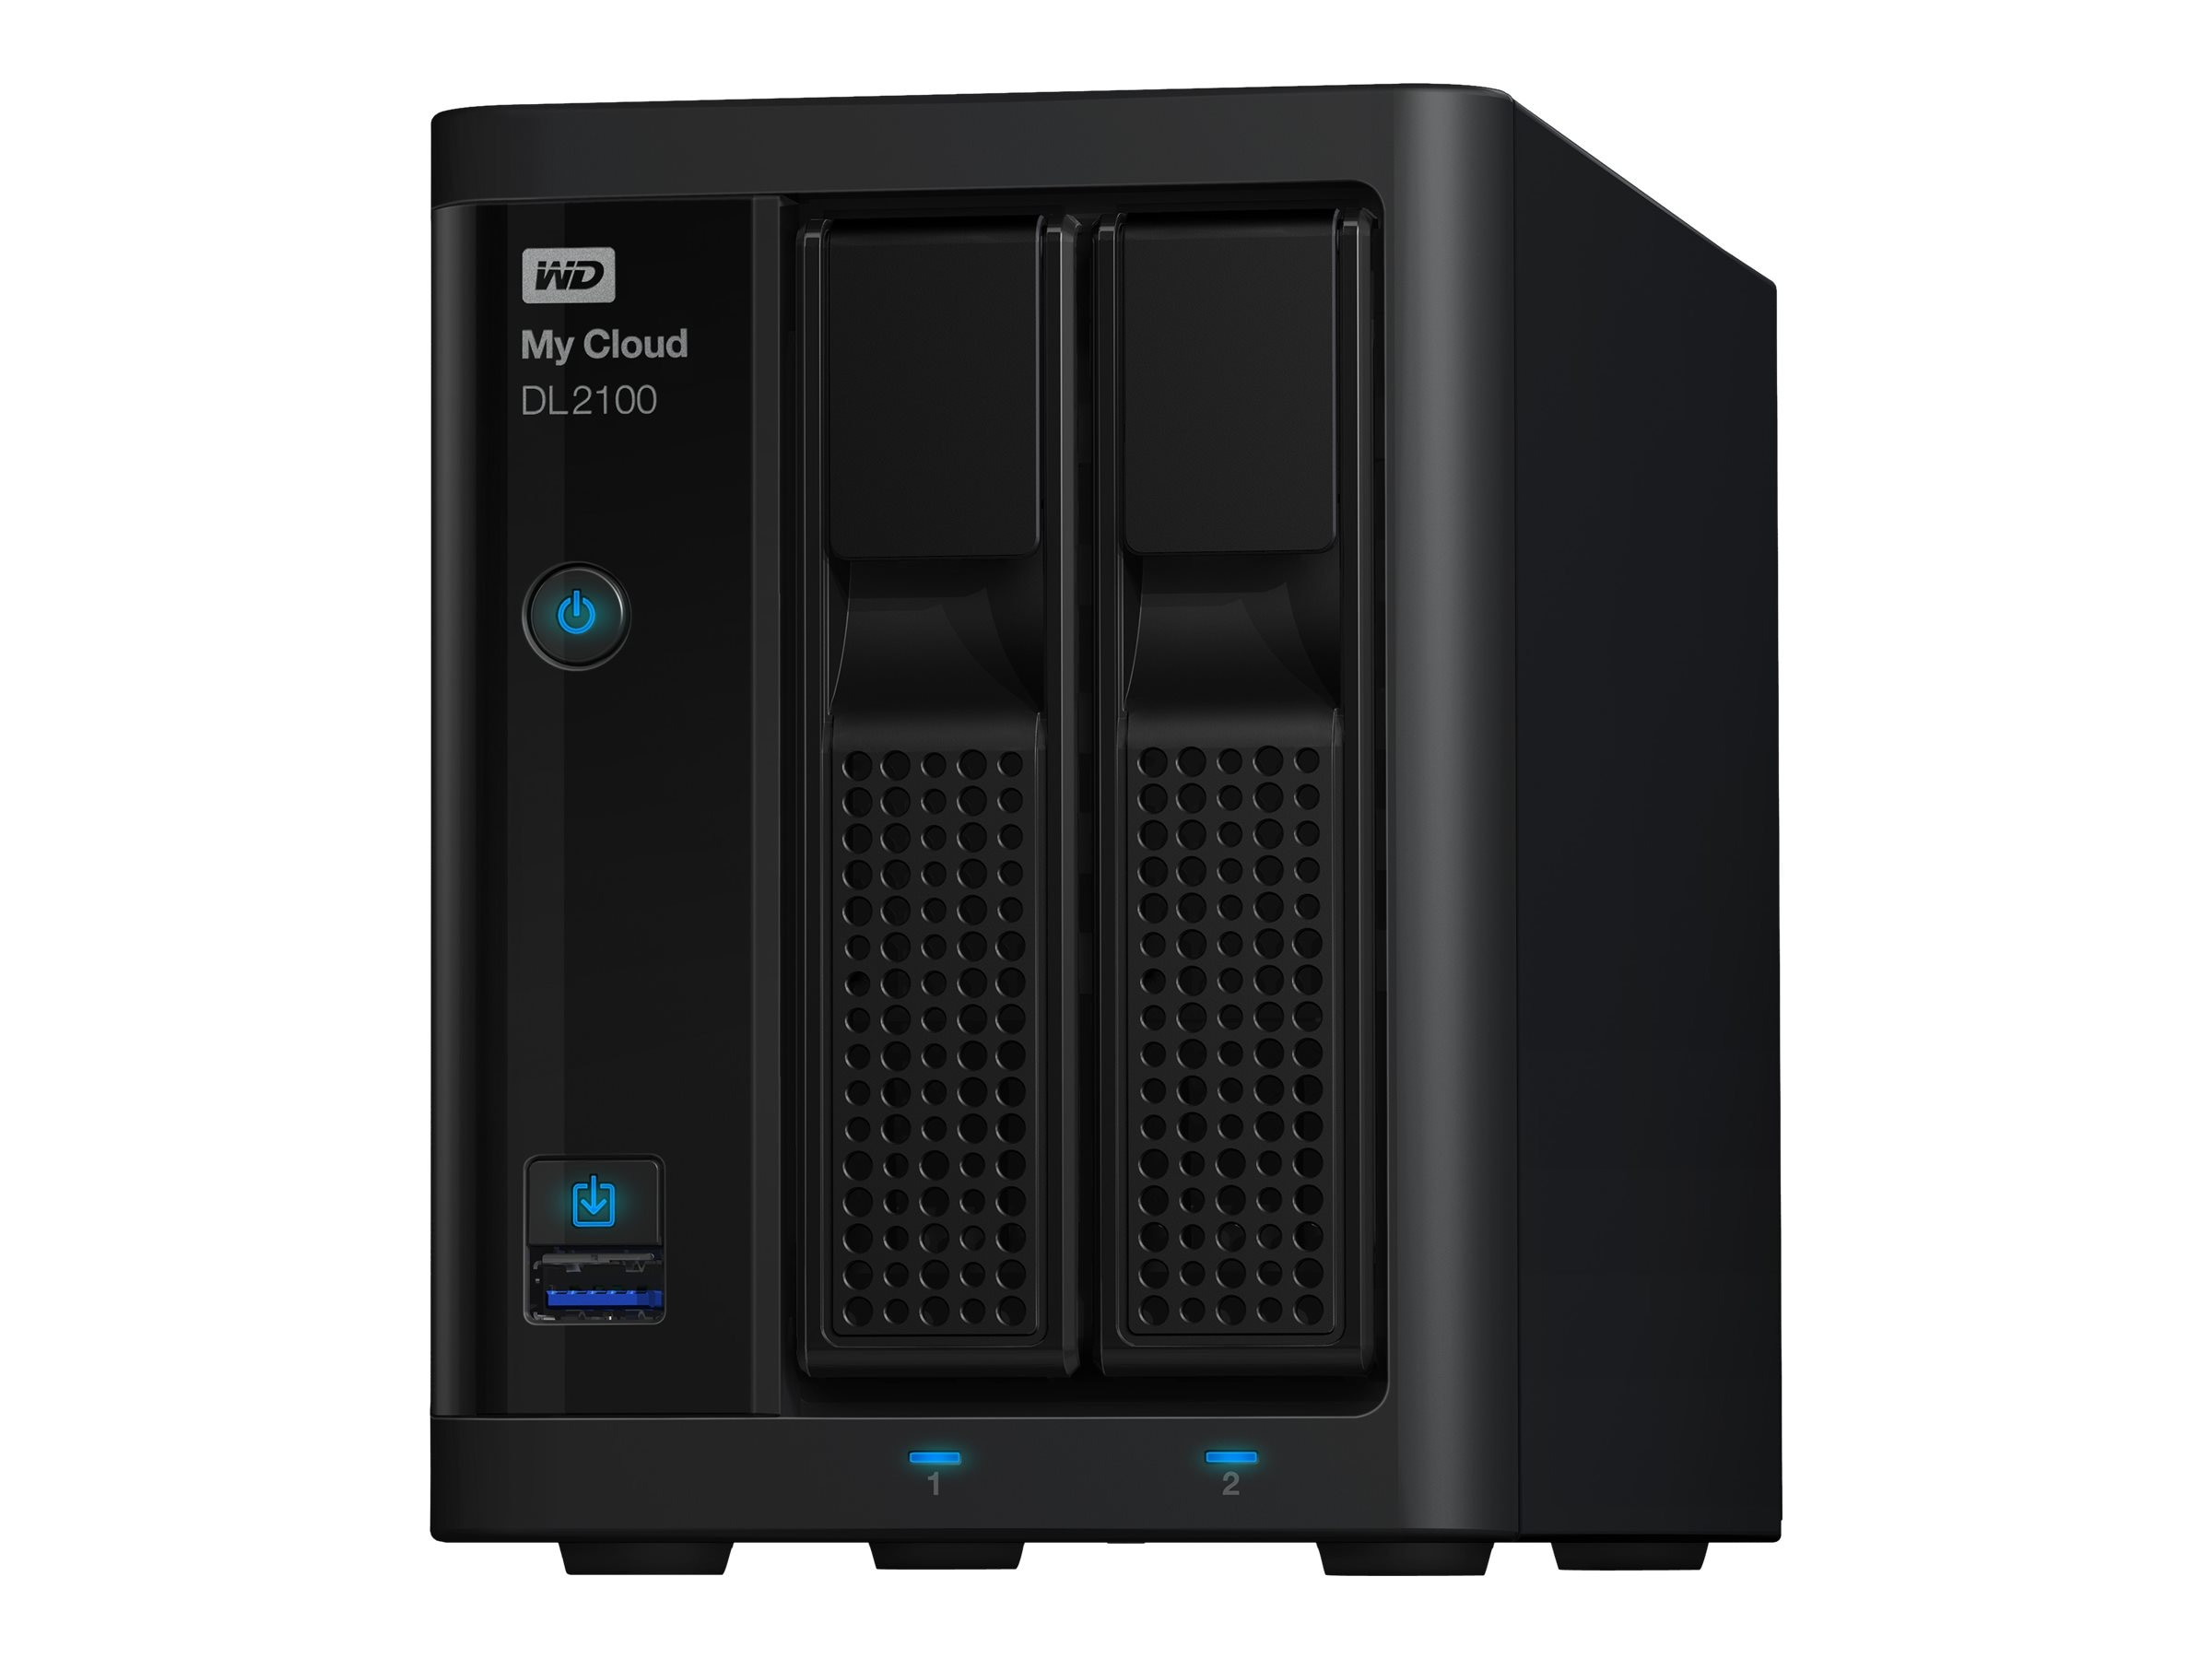 WD 4TB My Cloud DL2100 Network Attached Storage, WDBBAZ0040JBK-NESN, 18442721, Network Attached Storage